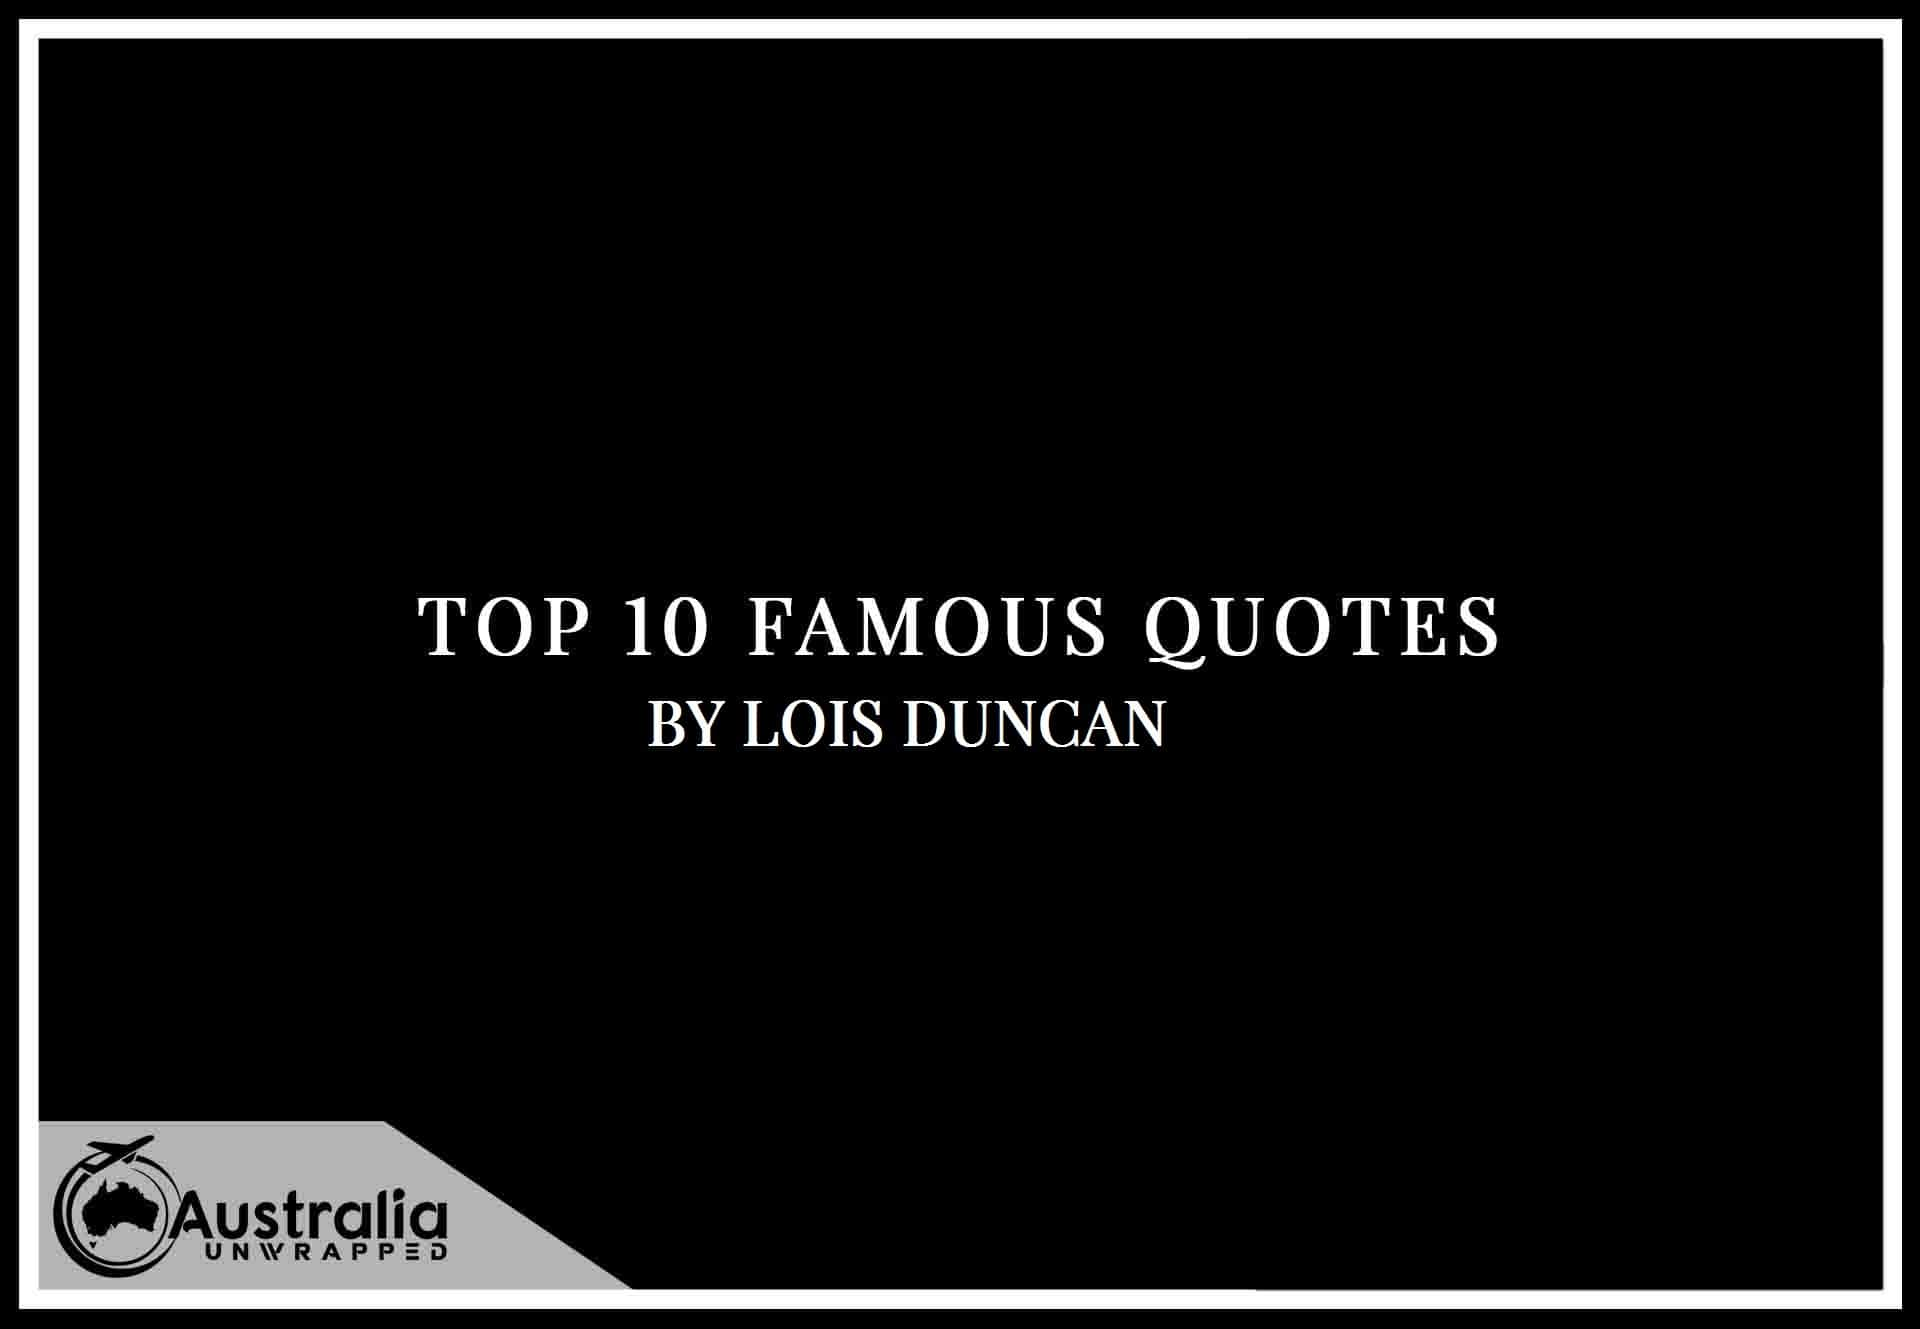 Lois Duncan's Top 10 Popular and Famous Quotes